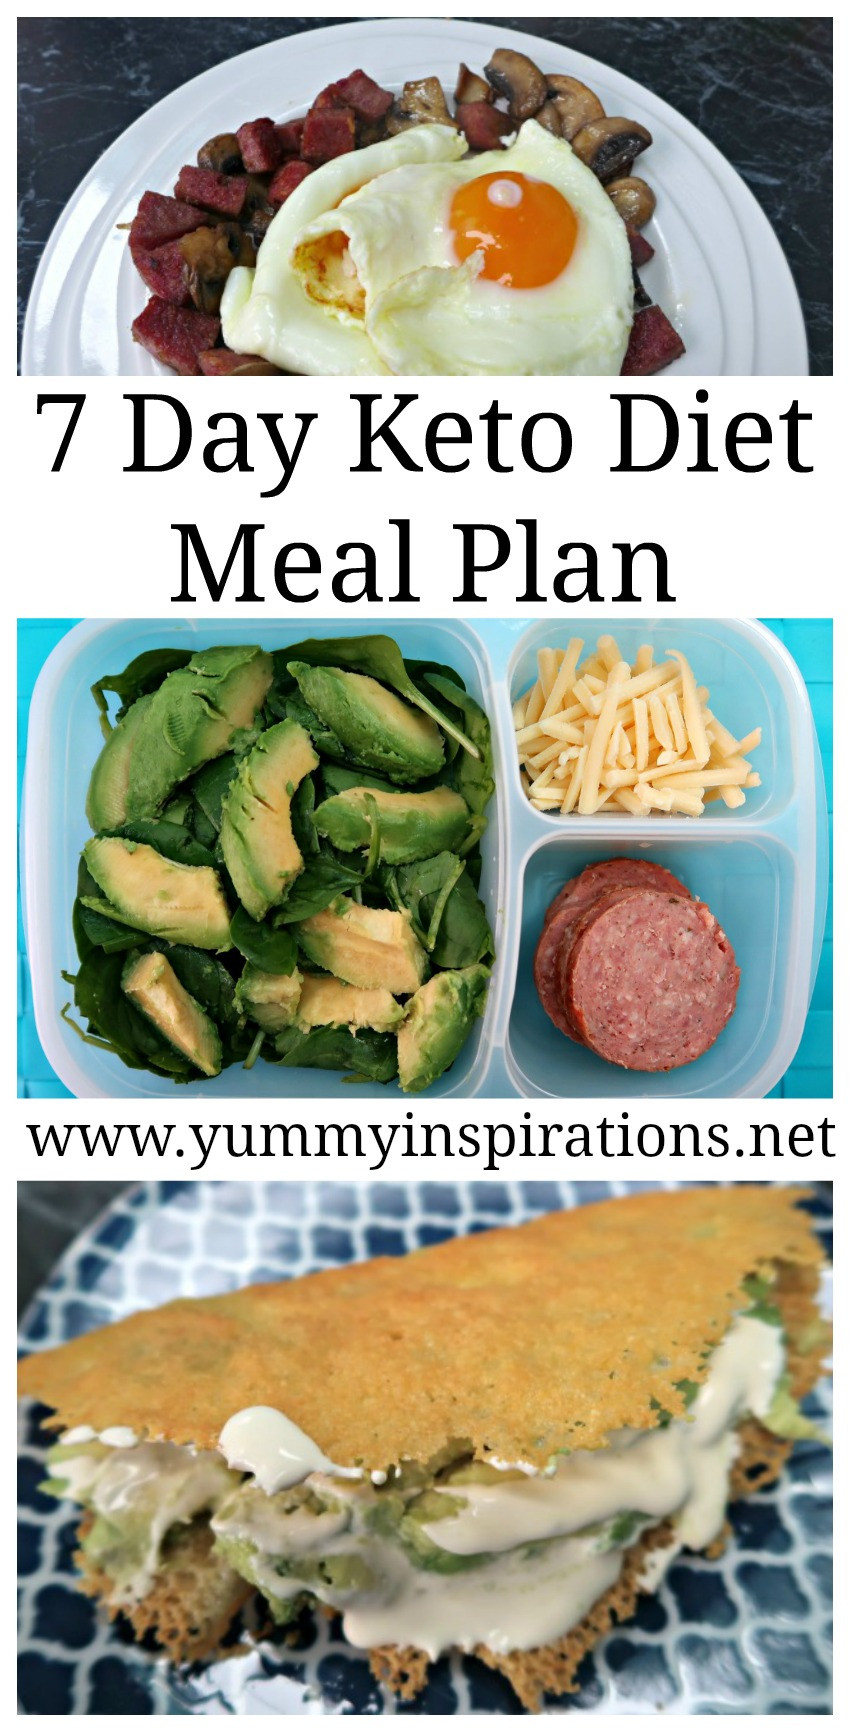 Menu For Keto Diet  7 Day Keto Diet Meal Plan Menu For Weight Loss Ketogenic